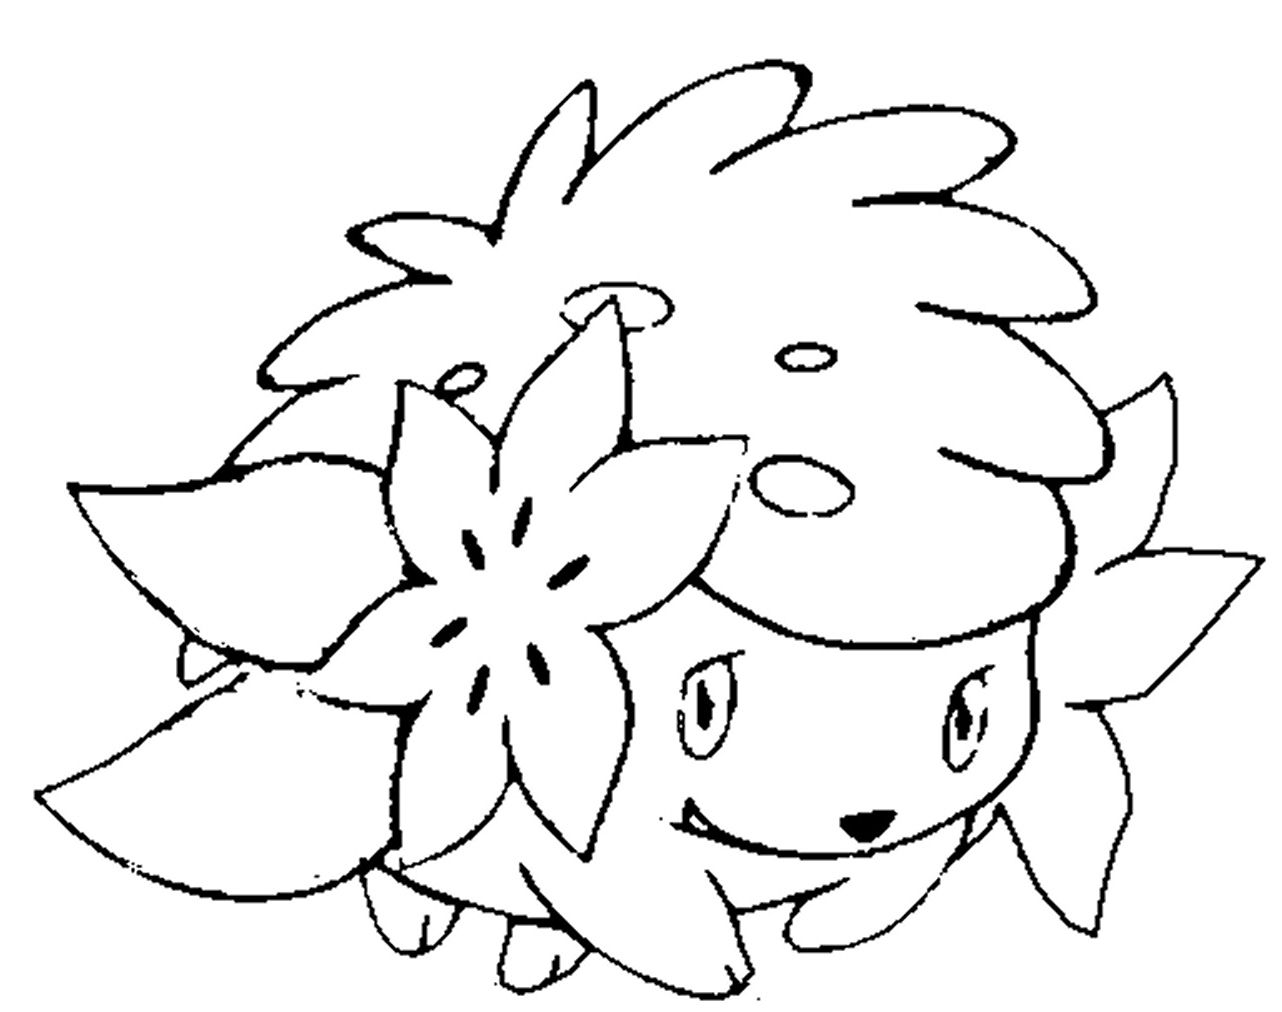 Free coloring pages pokemon - Pokemon Shaymin Coloring Page